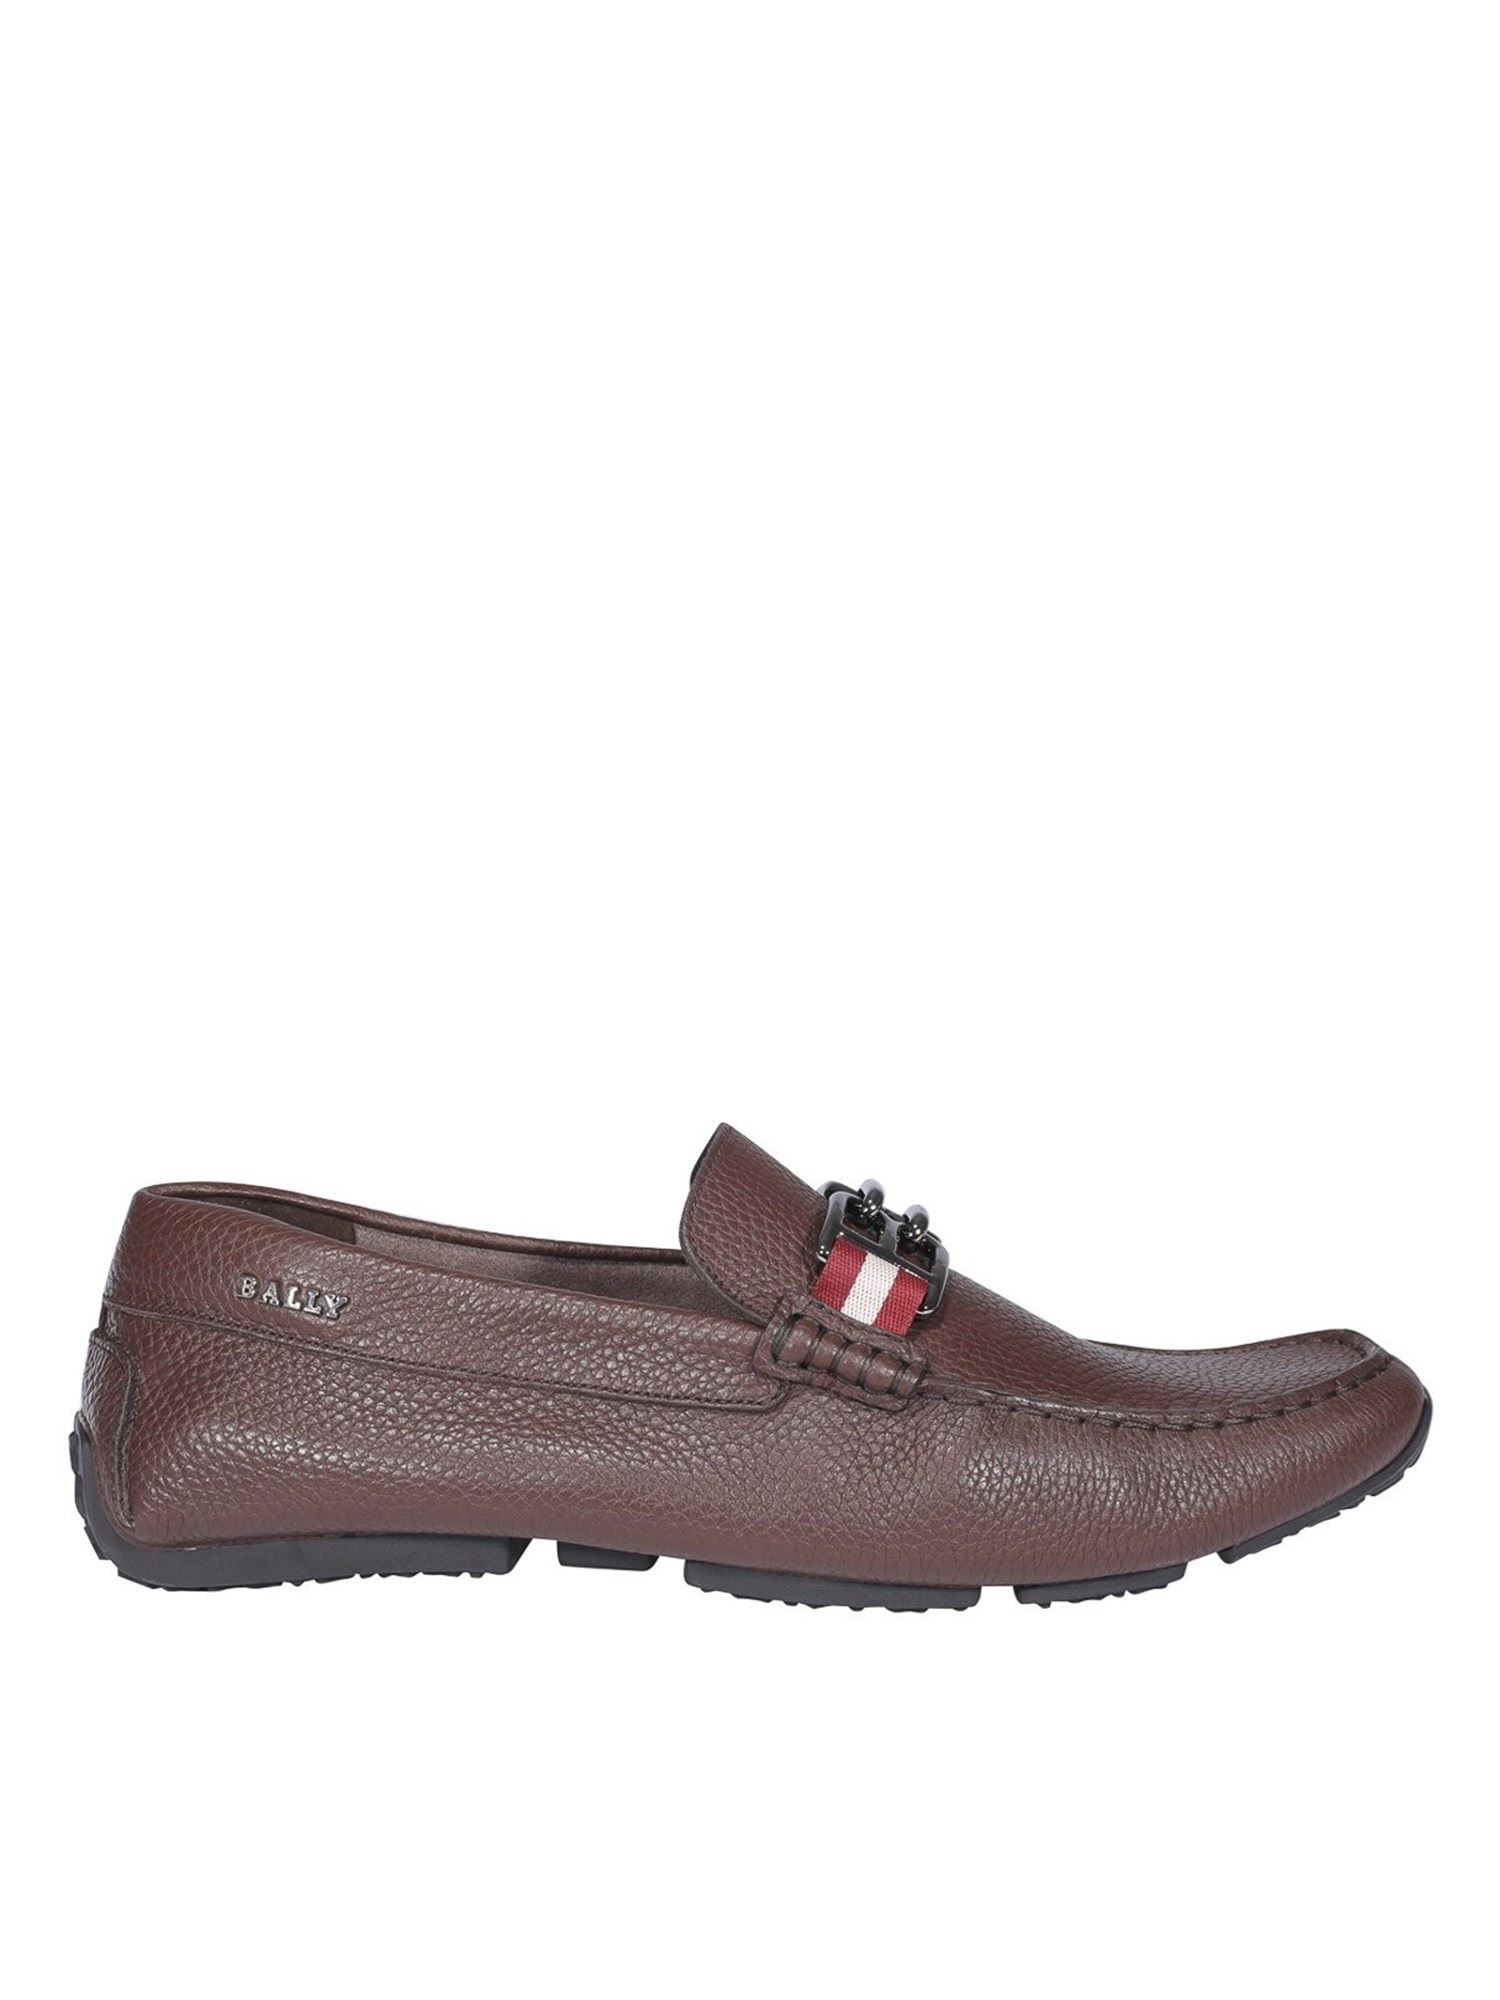 Bally PARSA LOAFERS IN BROWN